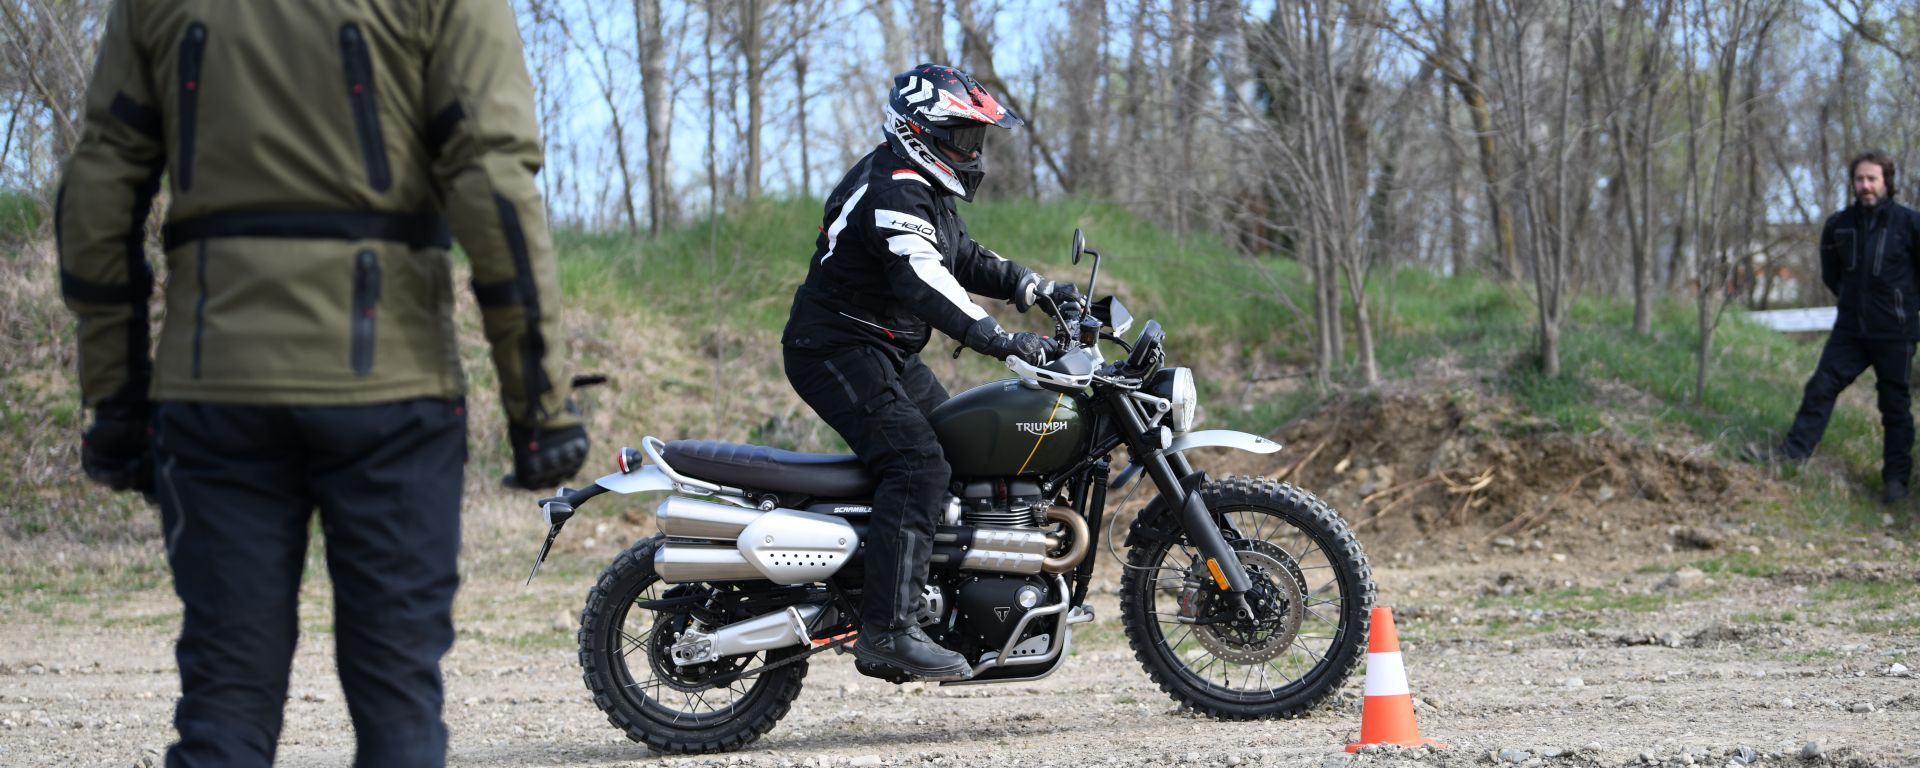 Triumph Adventure Experience: l'off-road secondo Triumph